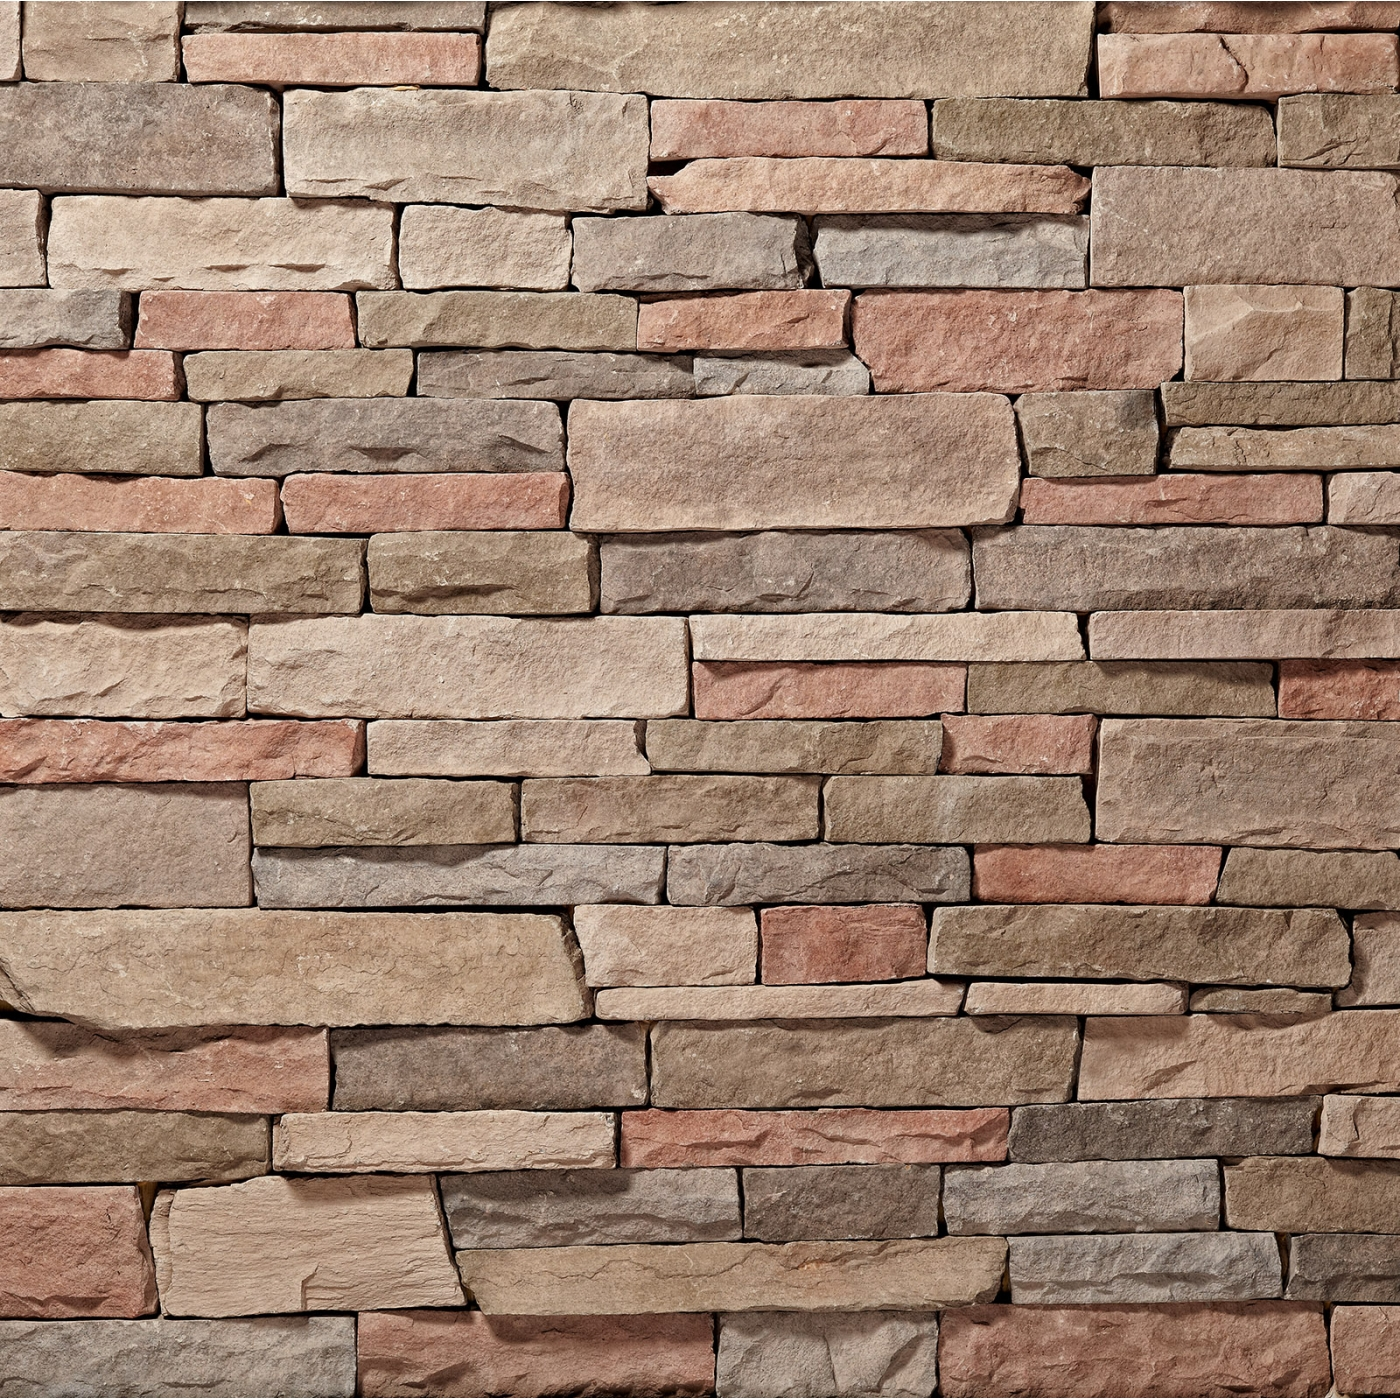 Chardonnay Ledgestone Stone Veneer from Environmental StoneWorks